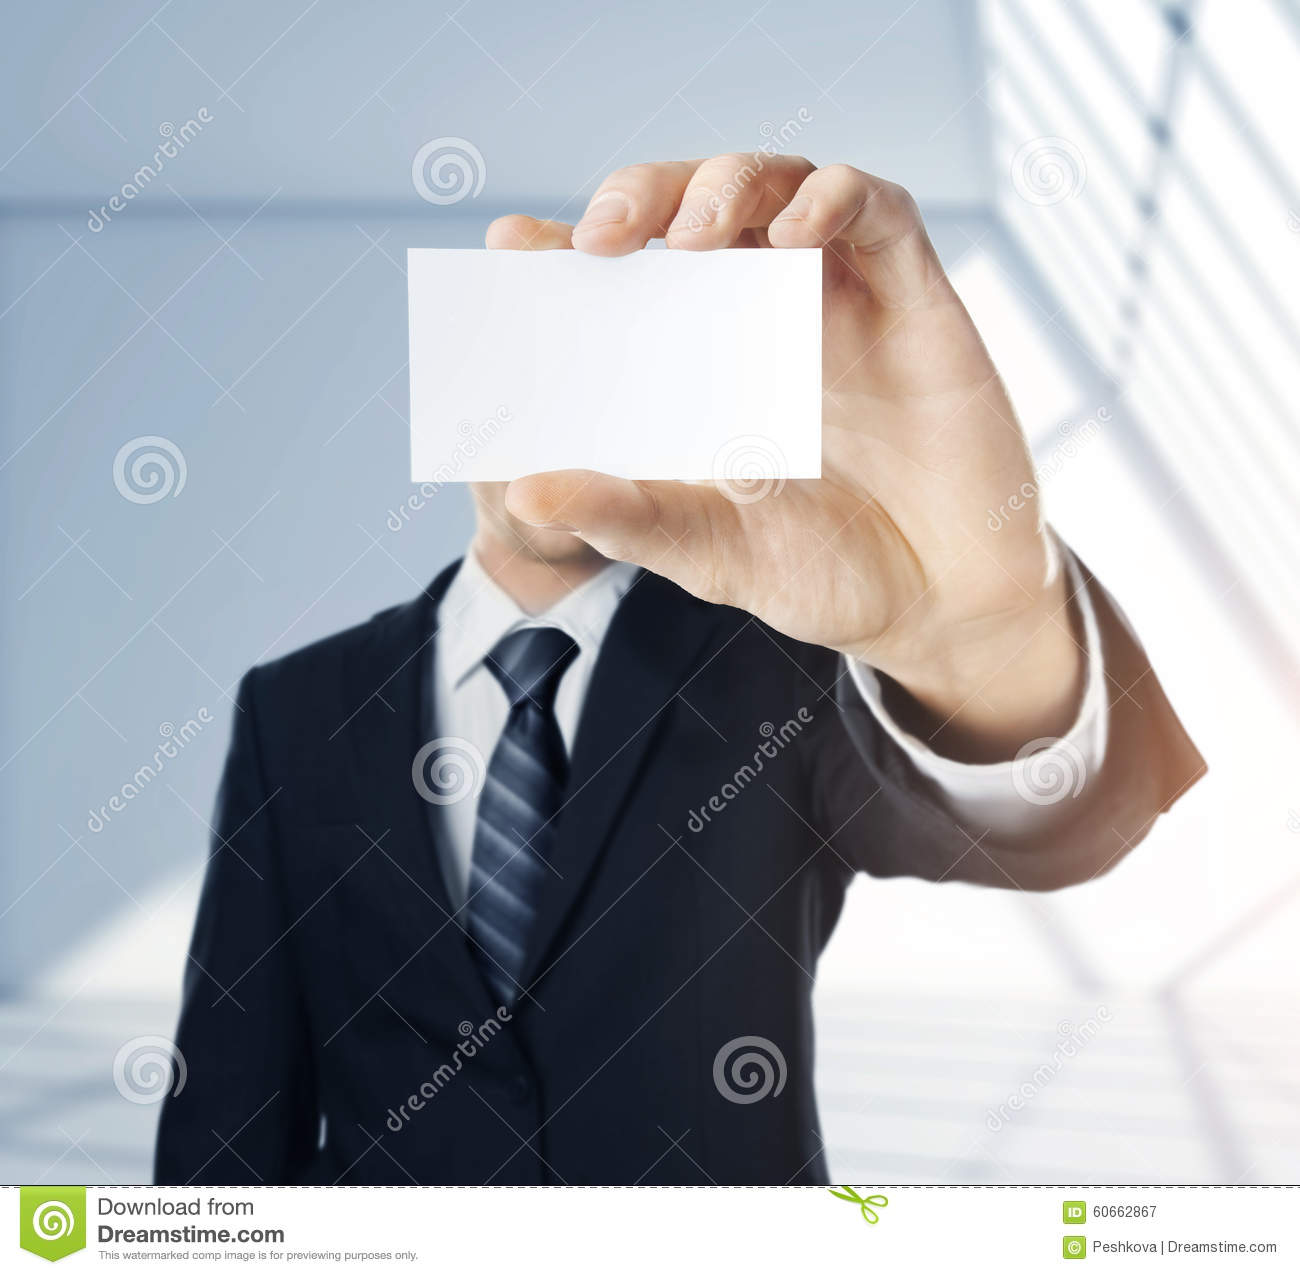 Man Handing A Blank Business Card Stock Image - Image of concept ...